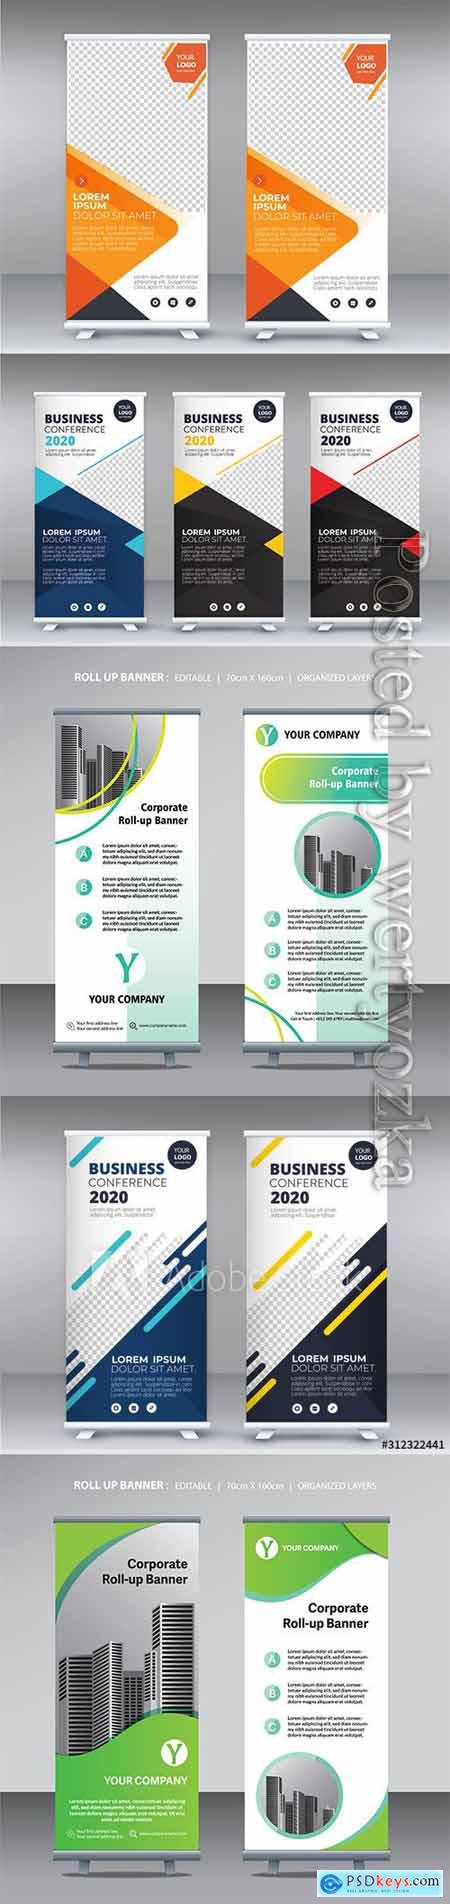 Business roll up banner, stand poster brochure